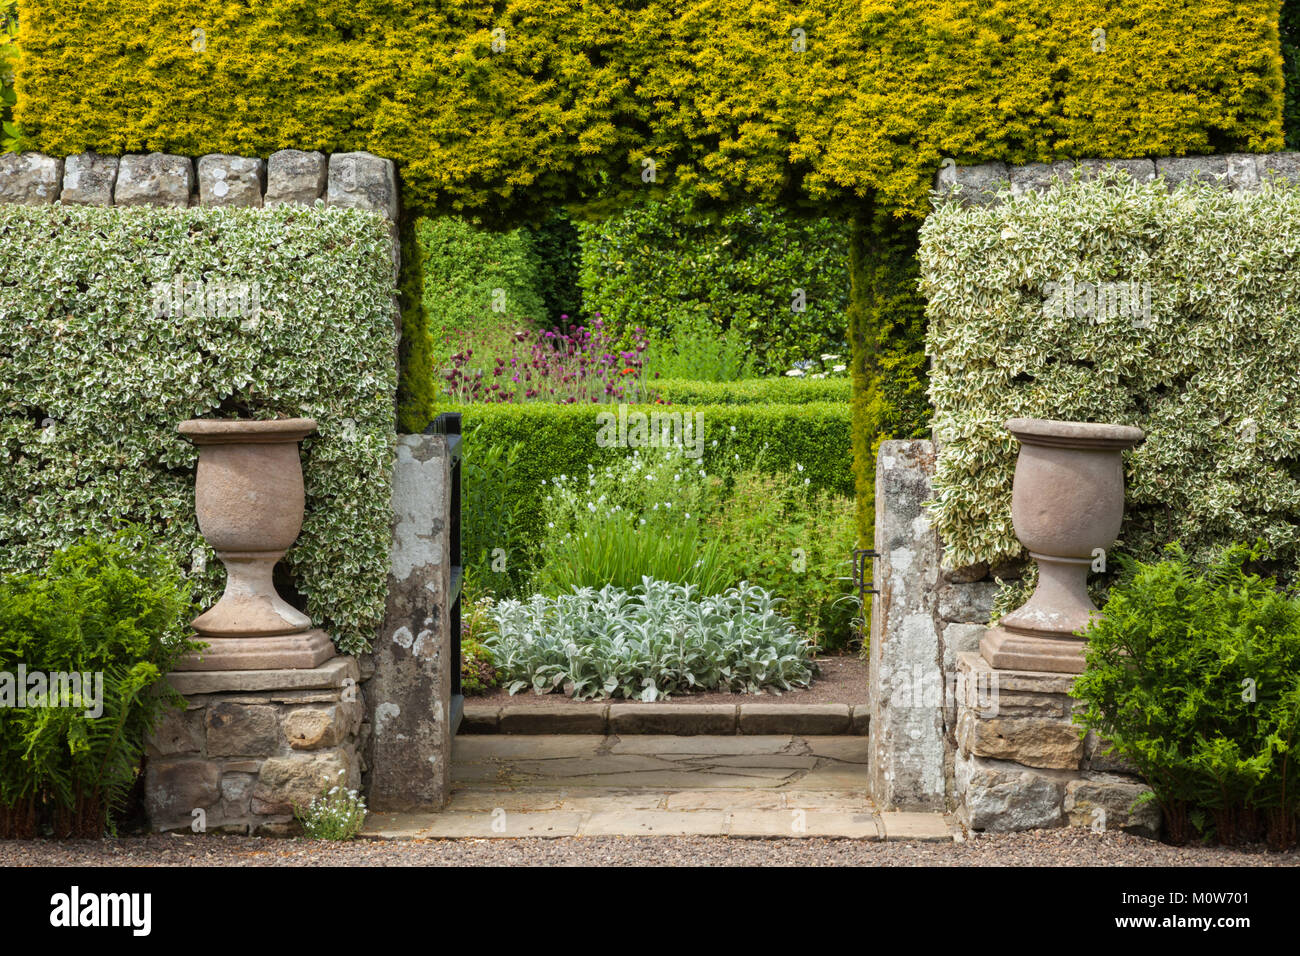 Entrance to the Flower Garden of Herterton House in summer, framed by a high stone wall and yew hedge arch near - Stock Image